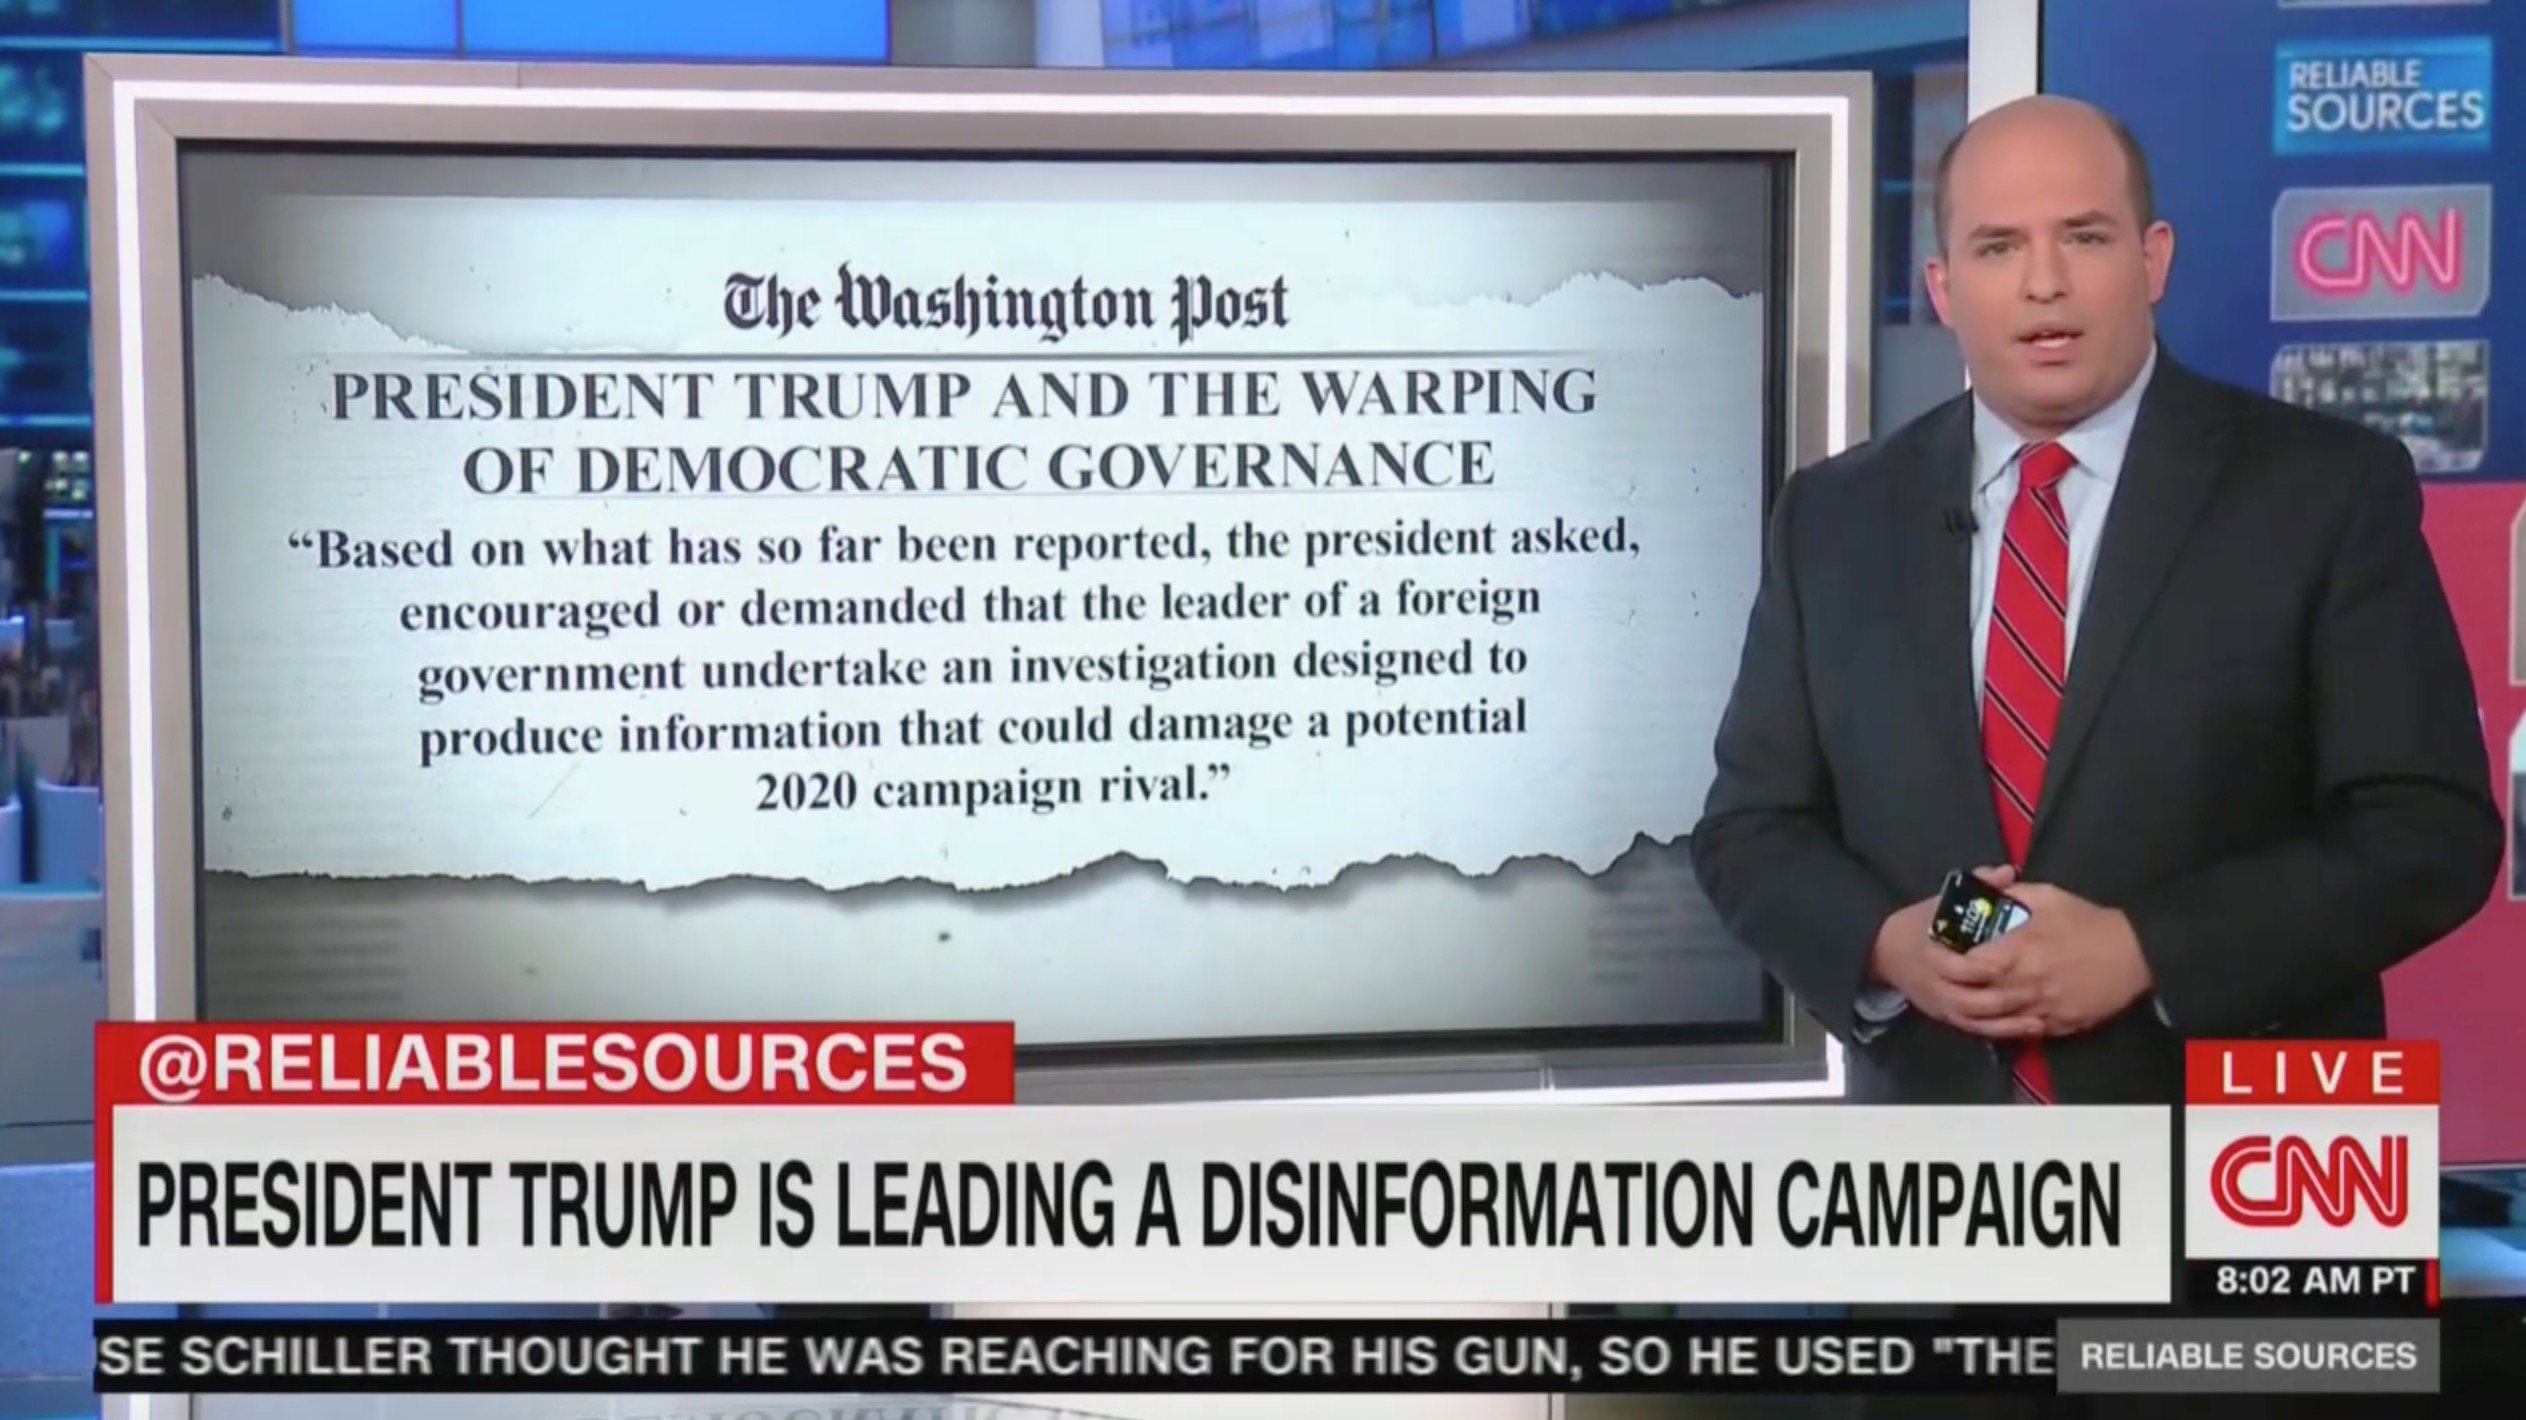 CNN's Stelter Rips Trump Defenders Over Whistleblower Report: They 'Will Do Anything' to Deny and Deflect